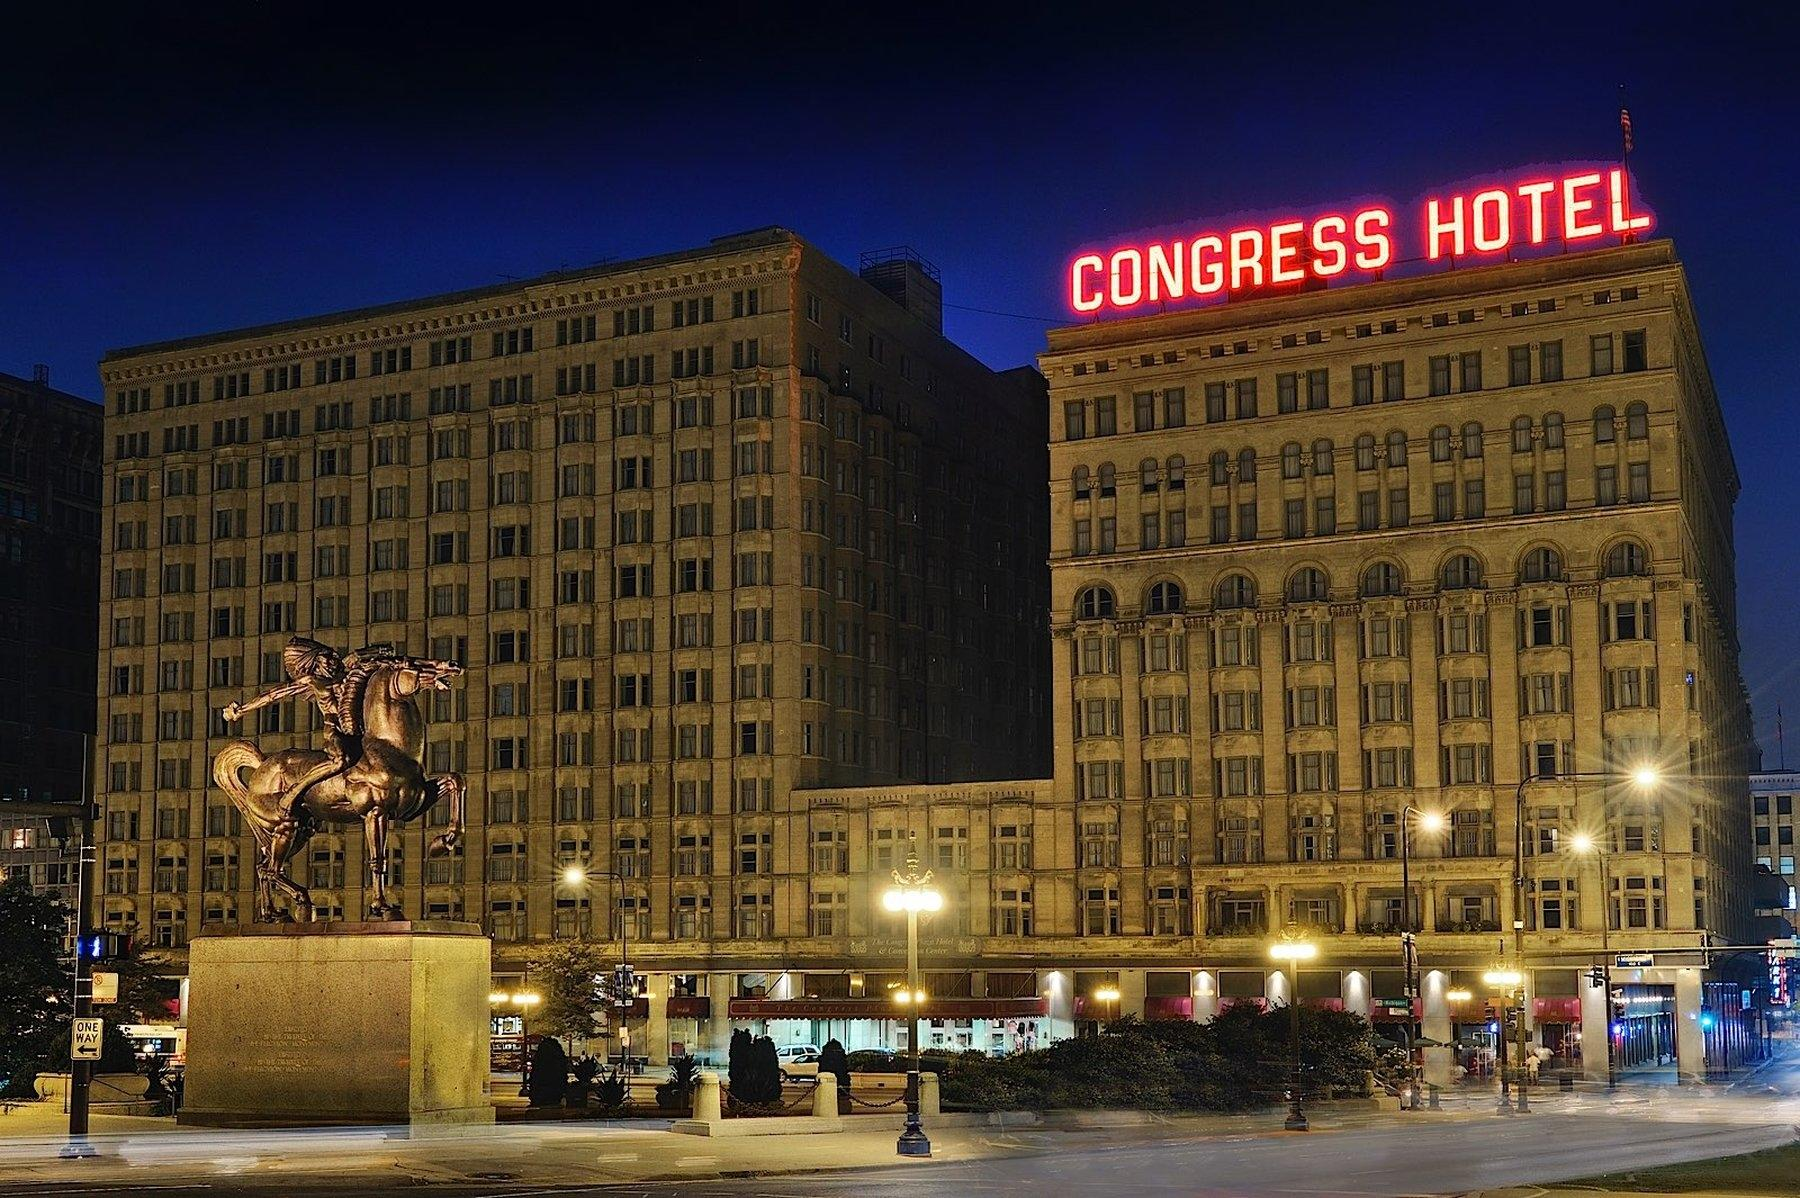 Congress Plaza Hotel Exterior at night